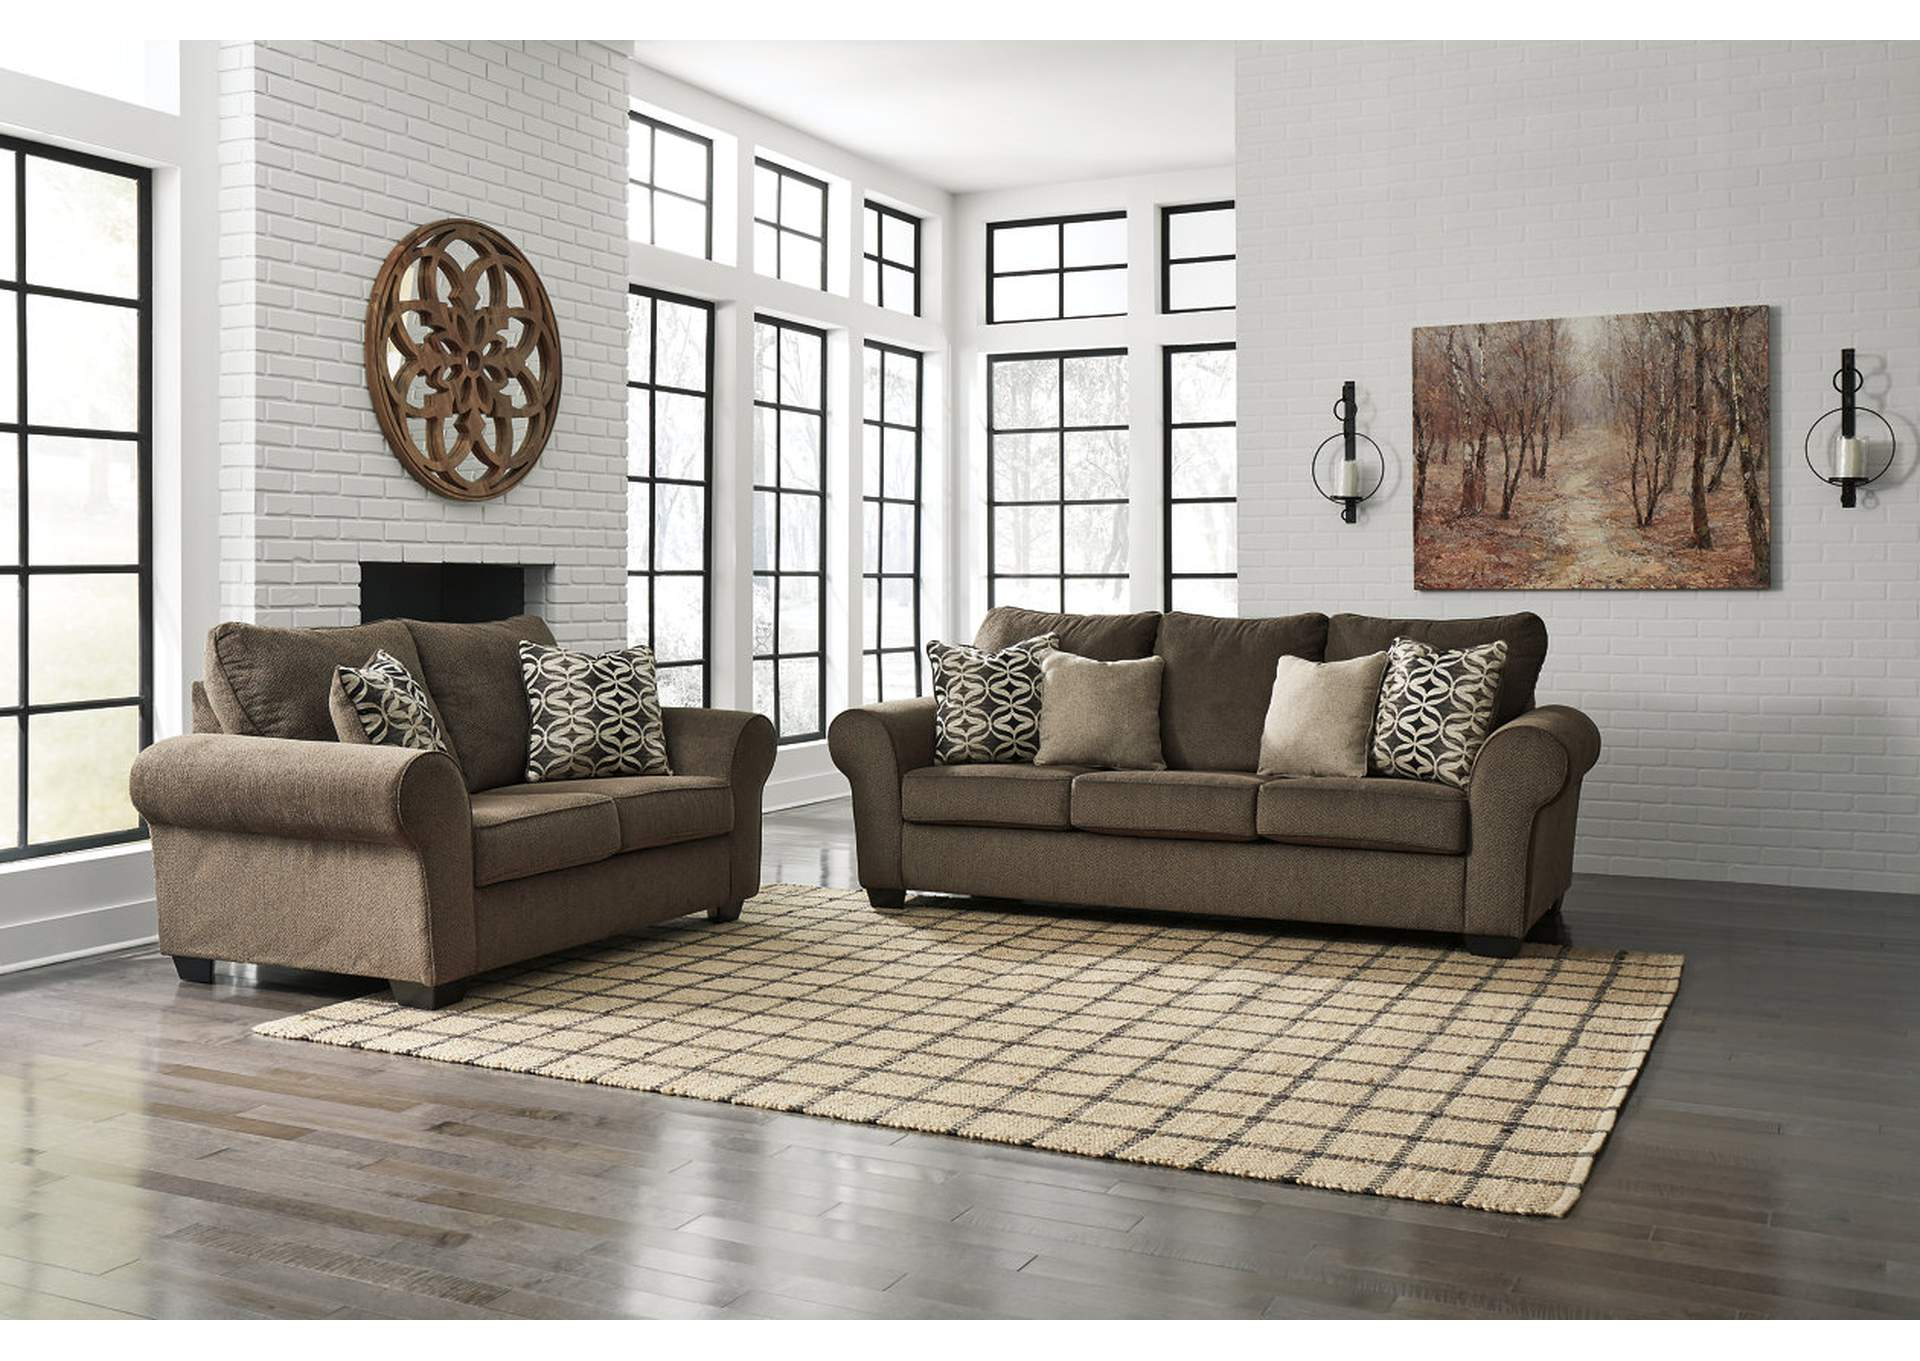 Nesso Walnut Sofa & Loveseat,Benchcraft